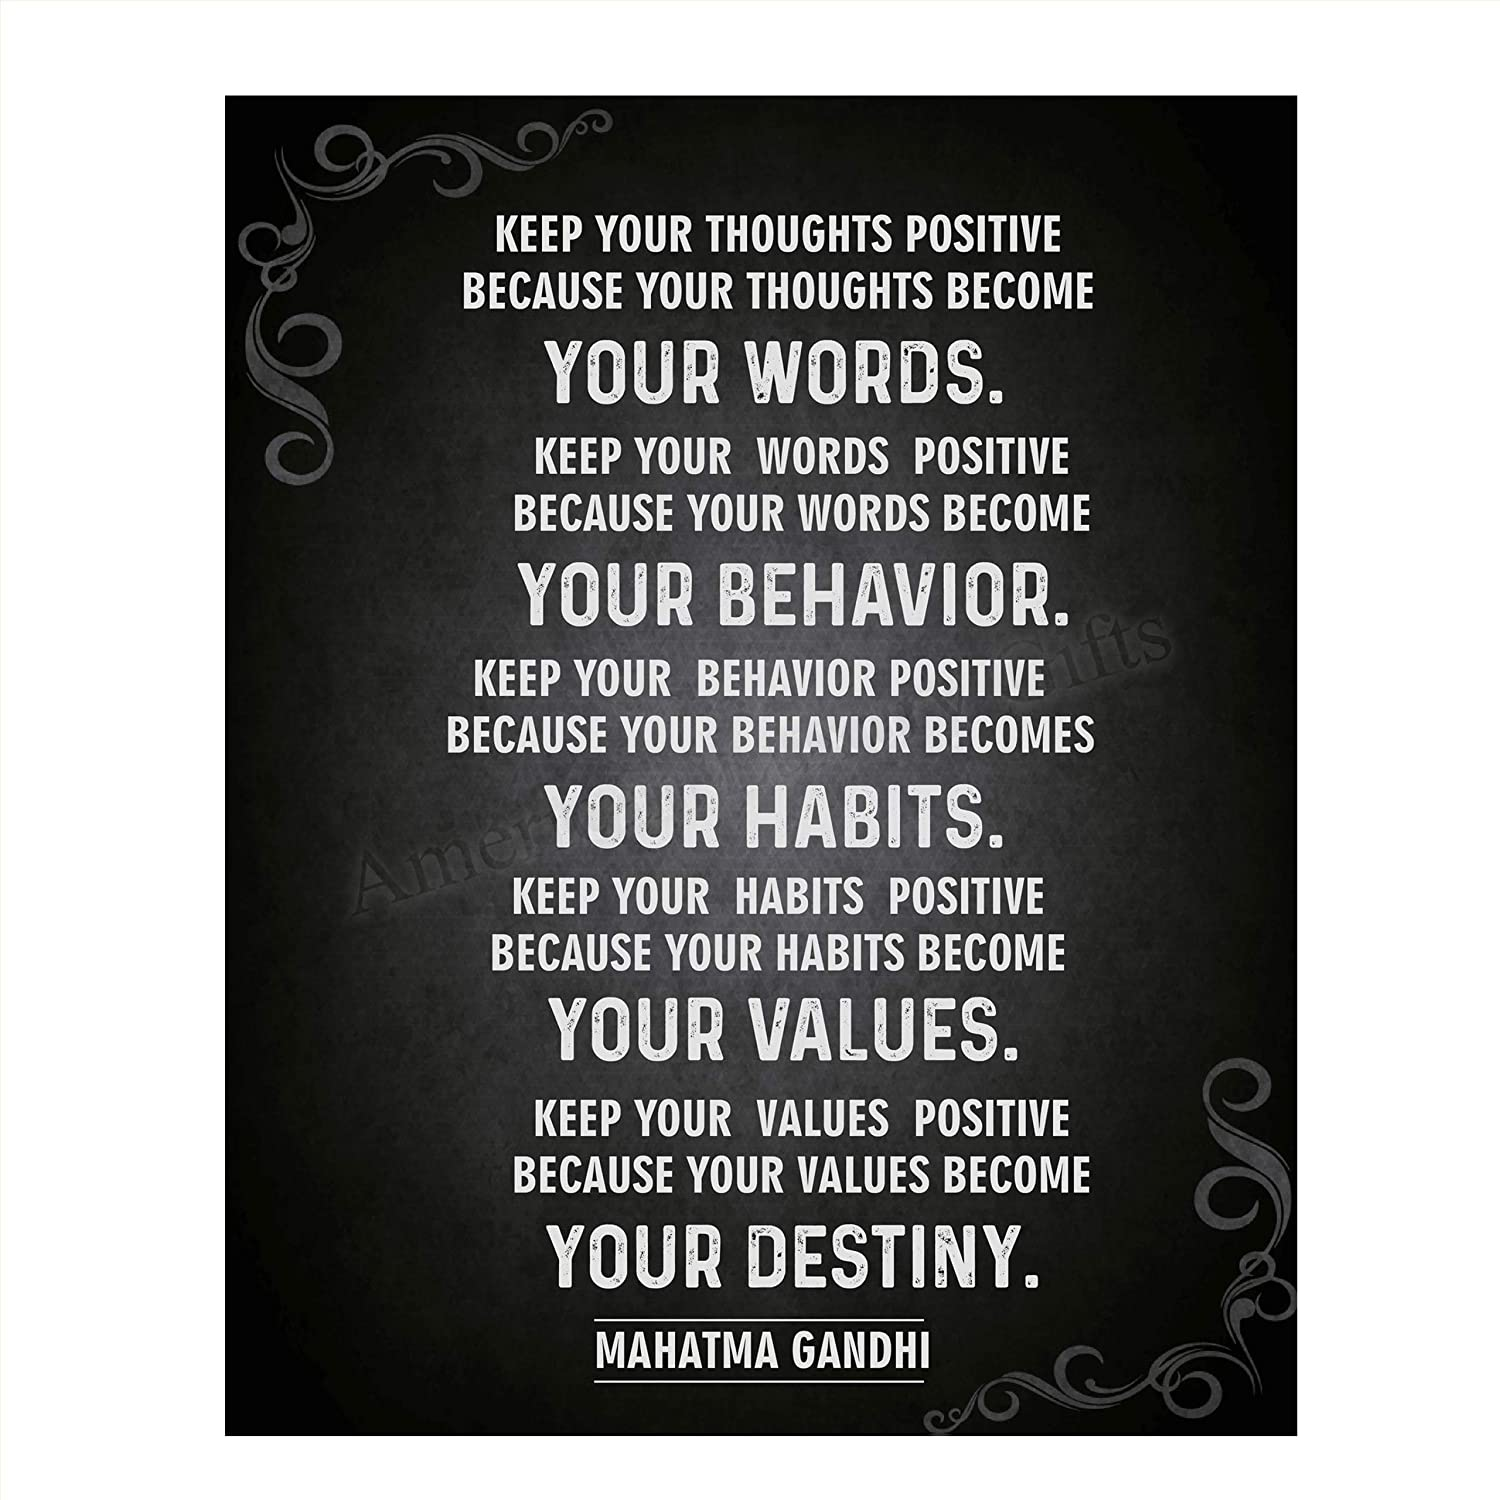 "GANDHI Quotes Wall Art- ""Your Destiny""- 8 x 10 Art Wall Print Art Ready to Frame. Modern Home Décor, Studio & Office Décor. Mahatma Gandhi Quotes Makes a Perfect Gift for Motivation, Zen & Inspiration"